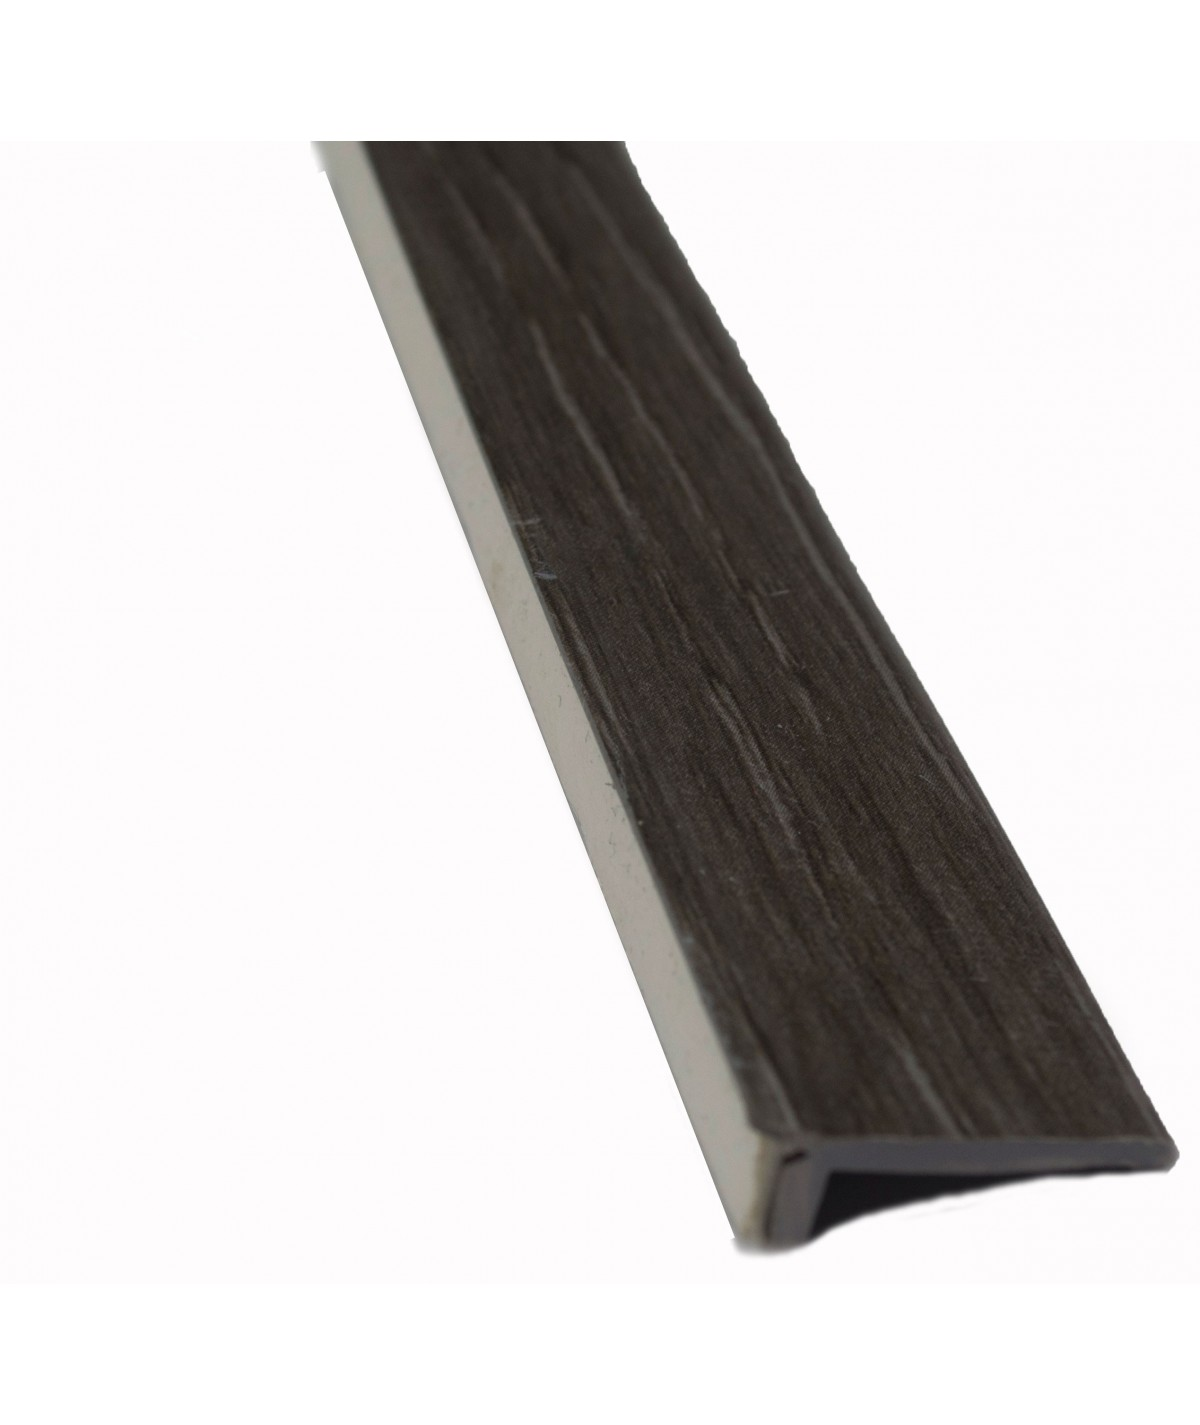 Dark Grey Floor Edge Adhesive Trim 5 x 2Mtr Lengths Bridge Gap Between Floor and Skirting 10mtrs